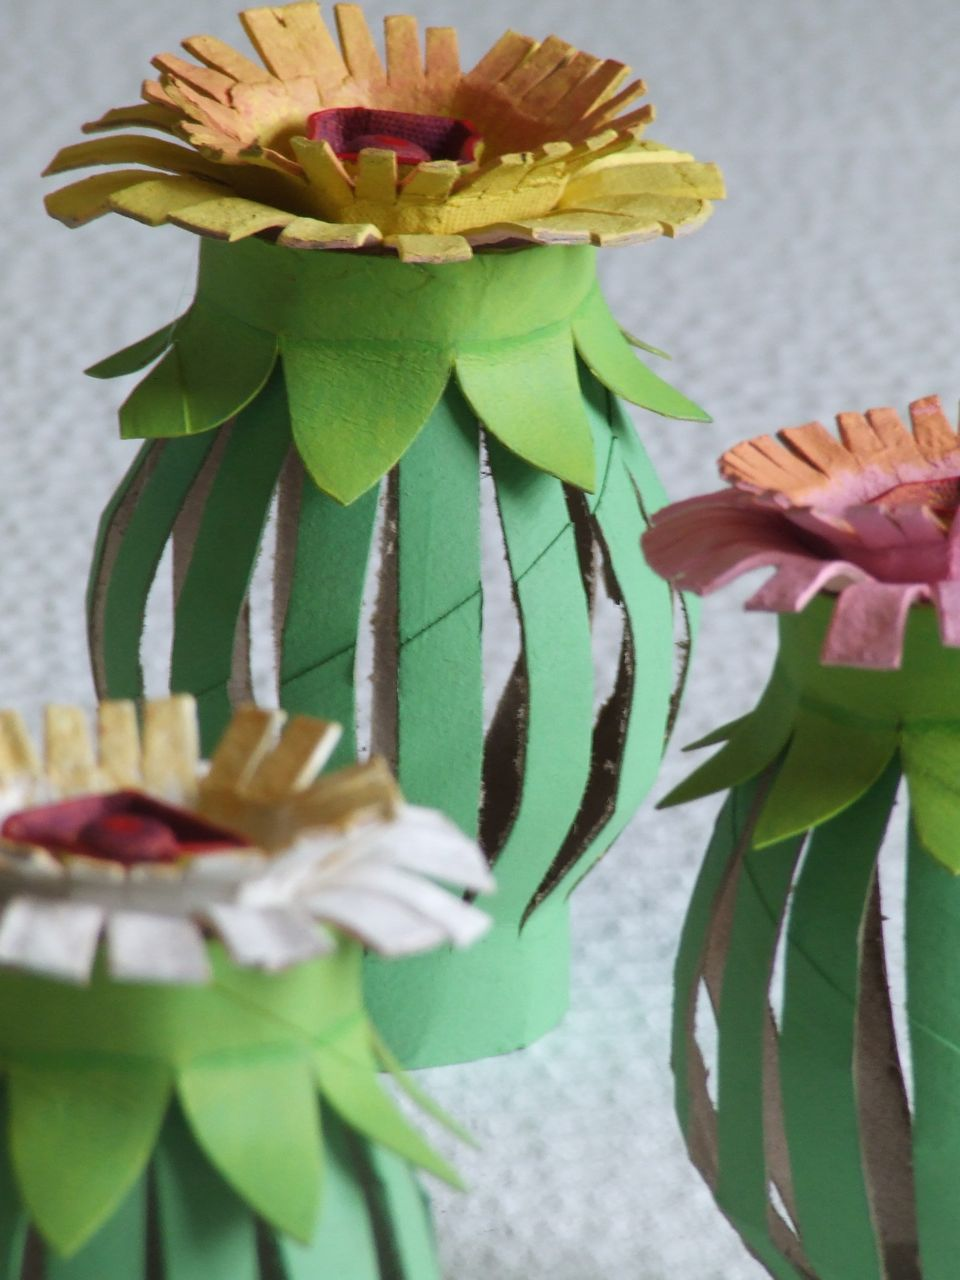 Tutorial toilet paper roll egg carton flowers michele made me ive never done a tutorial before but i figure gotta start somewhere right so here is tutorial 1 toilet paper tube egg carton flowers i made this mightylinksfo Choice Image